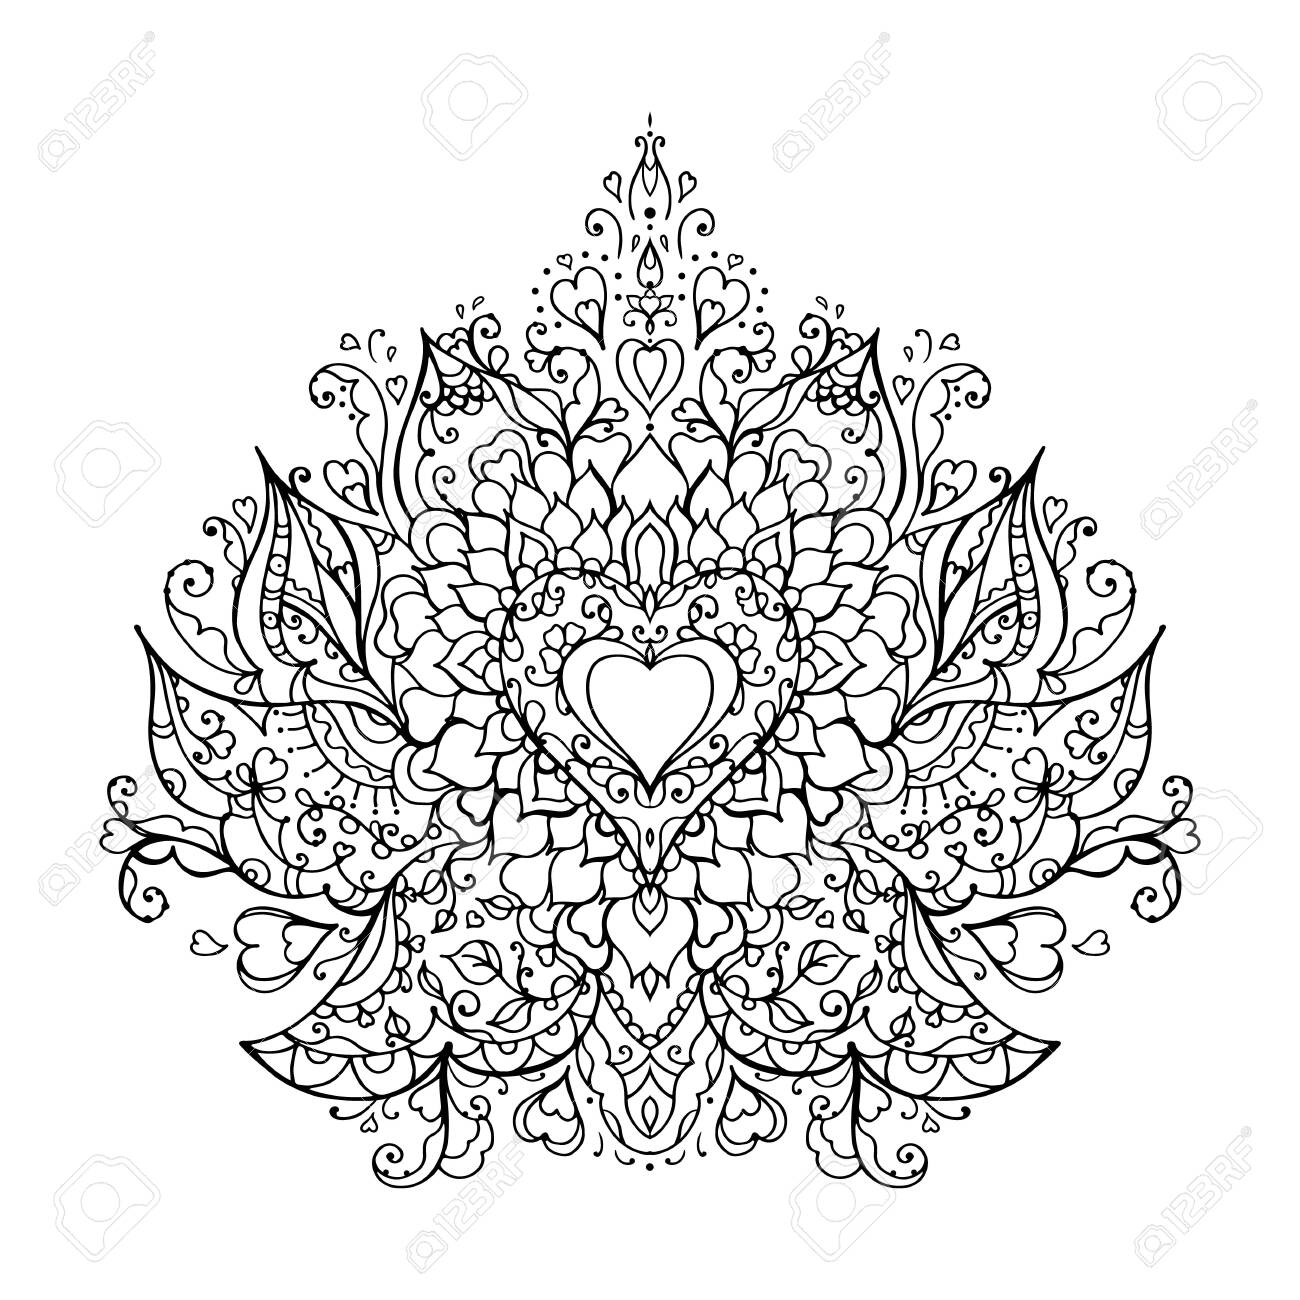 coloring pages : Therapeutic Coloring Pages Printable Beautiful ... | 1300x1300